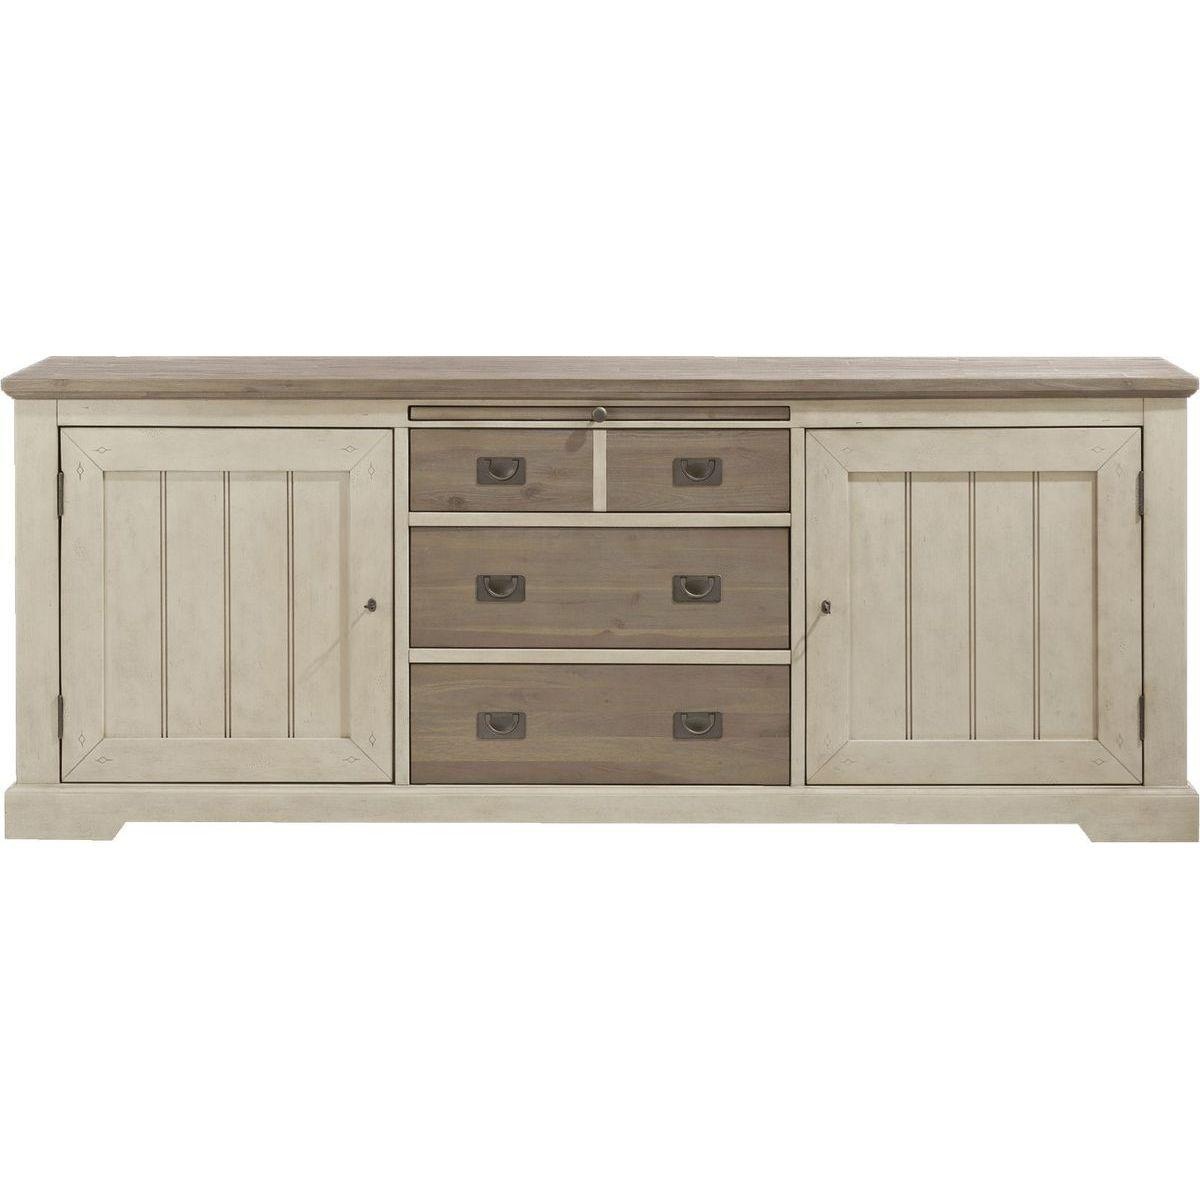 LE PORT by H&H Dressoir 220cm White